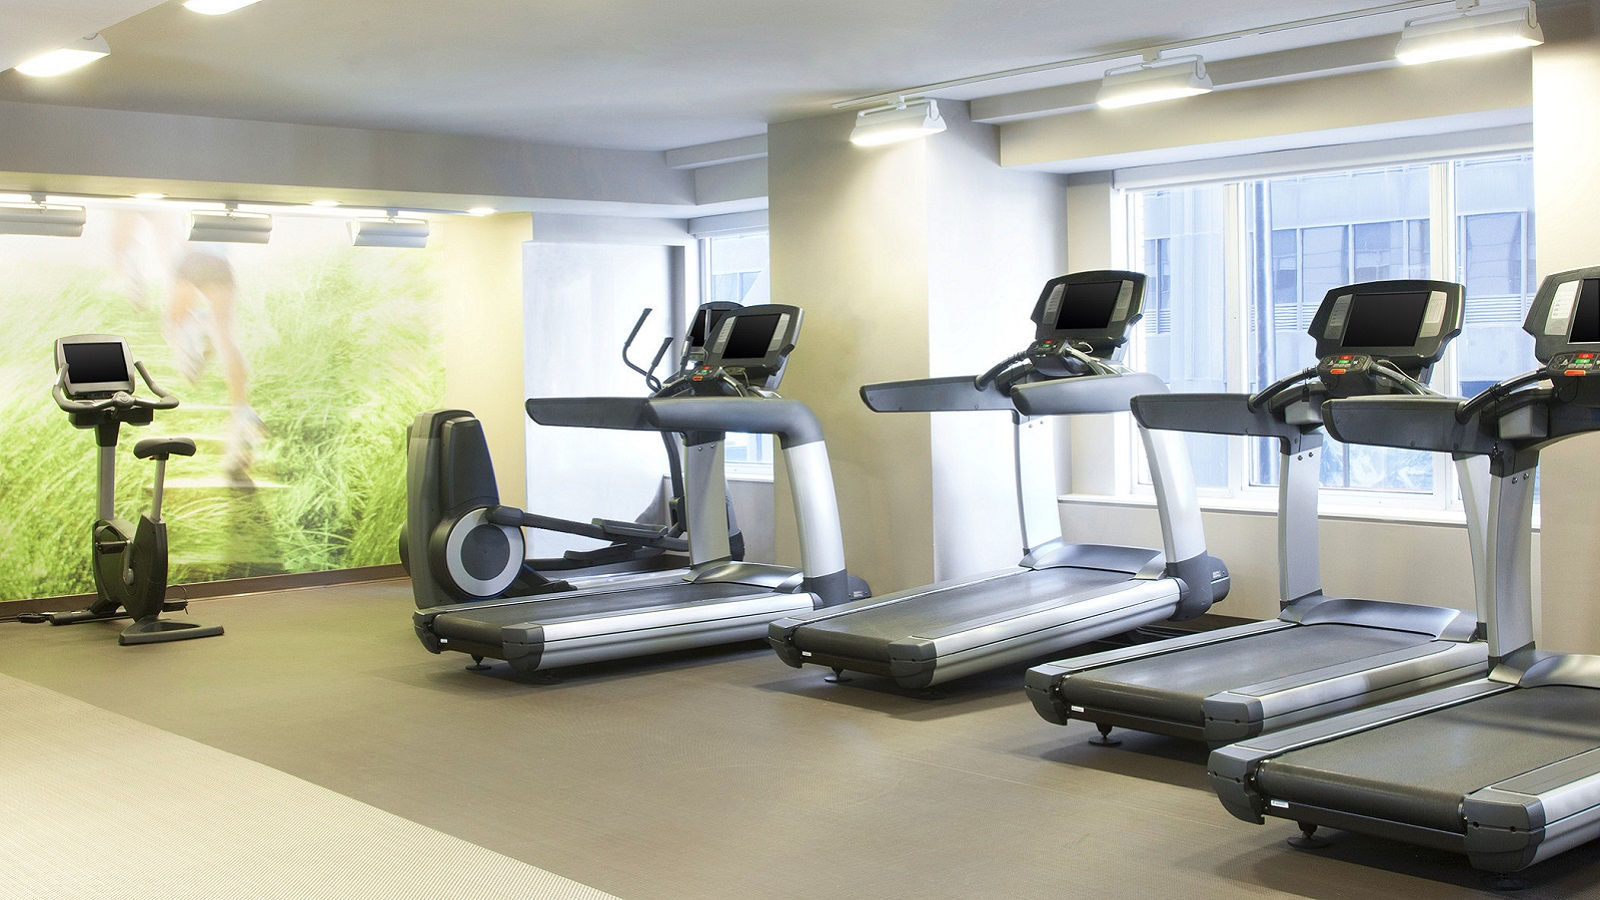 Hotel Features include a fitness center and runwestin program